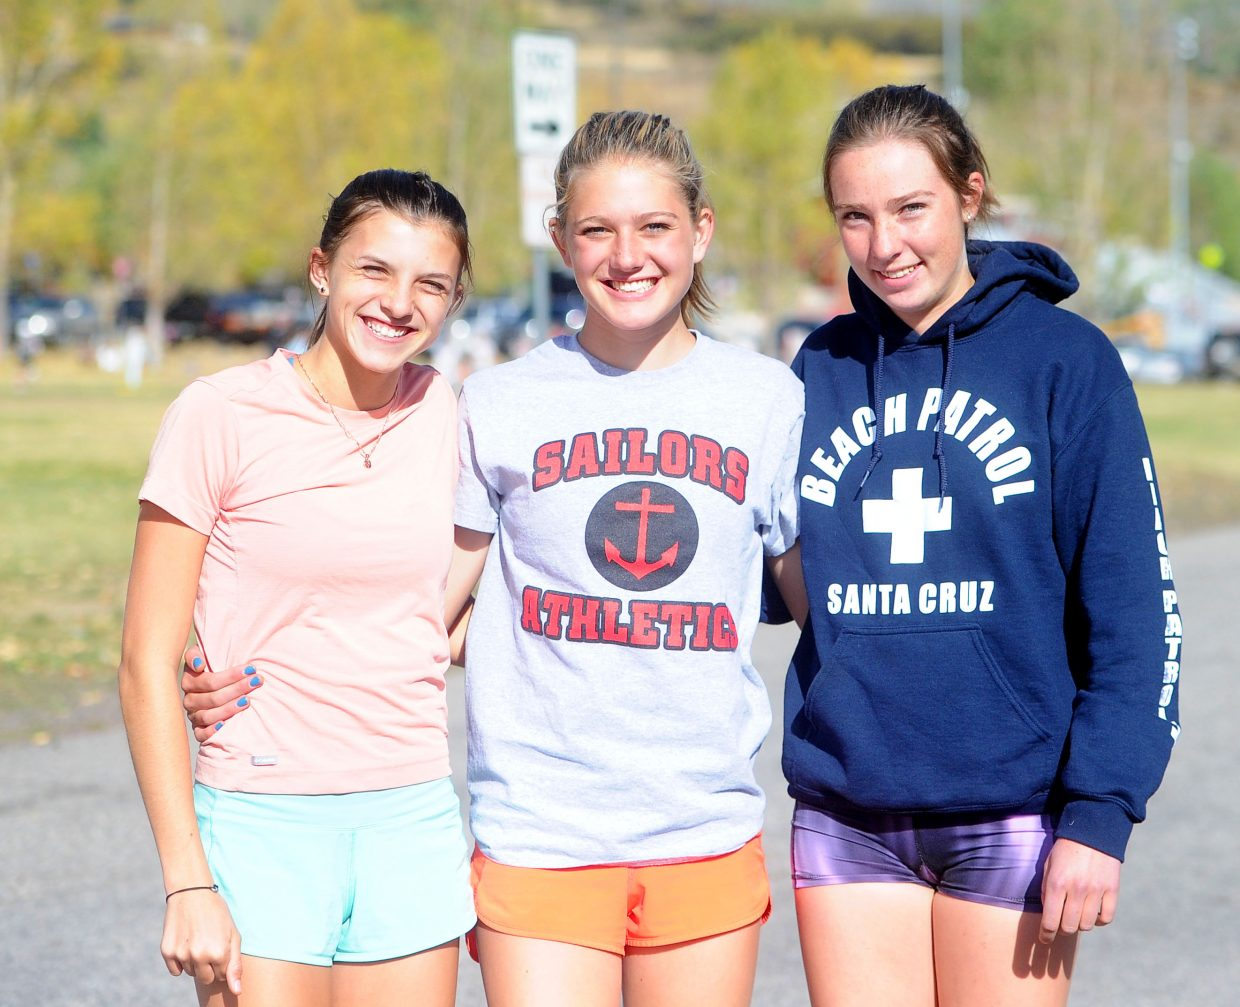 Junior Maggi Congdon, left, and seniors Isabelle Boniface, middle, and Winter Boese, right, will travel to the Stanford Invitational in Stanford, California, Saturday, Sept. 29.